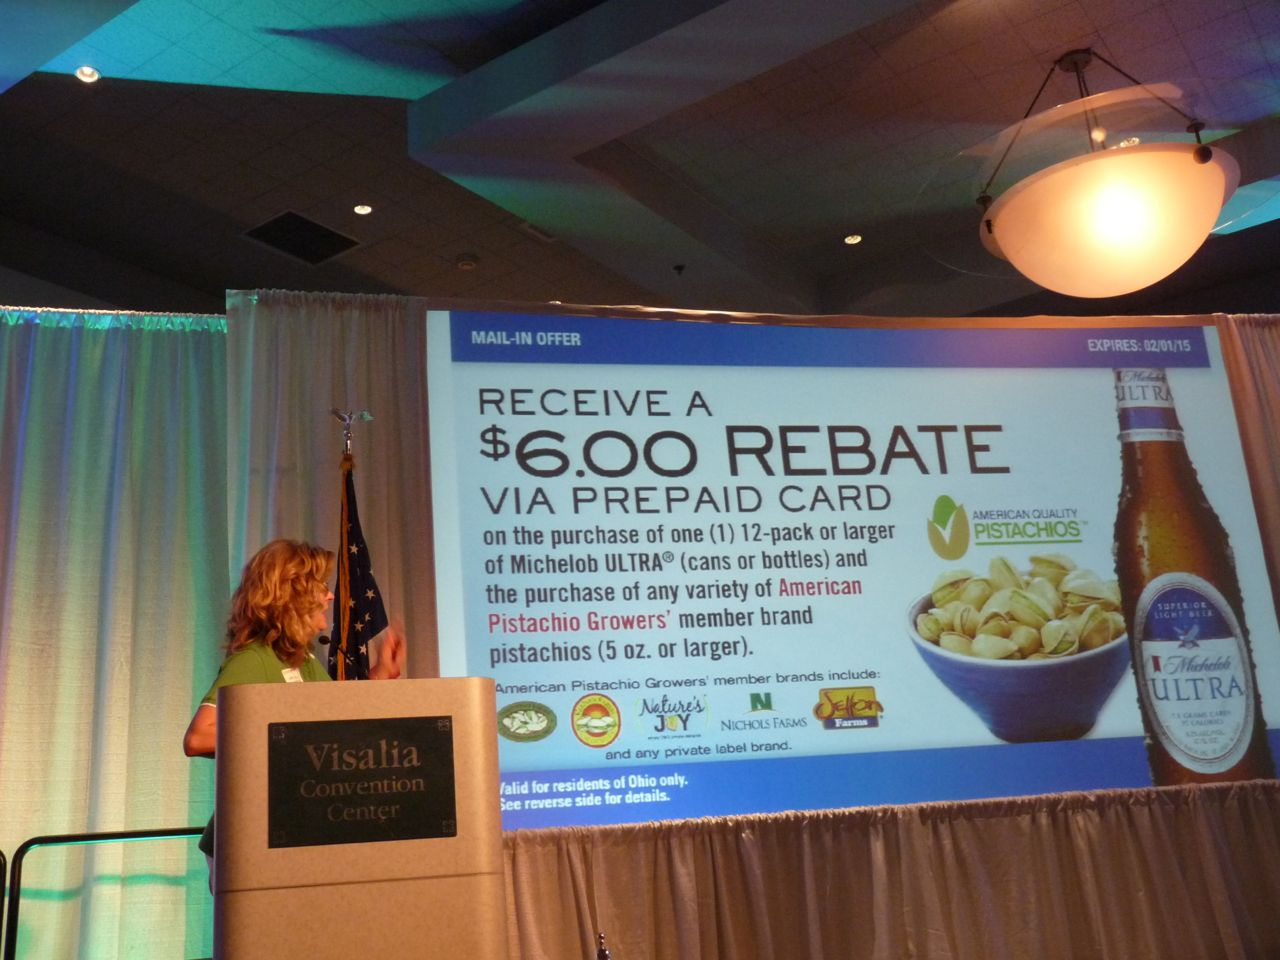 American Pistachio Growers Pair with Anheuser-Busch and Michelob ULTRA Beer